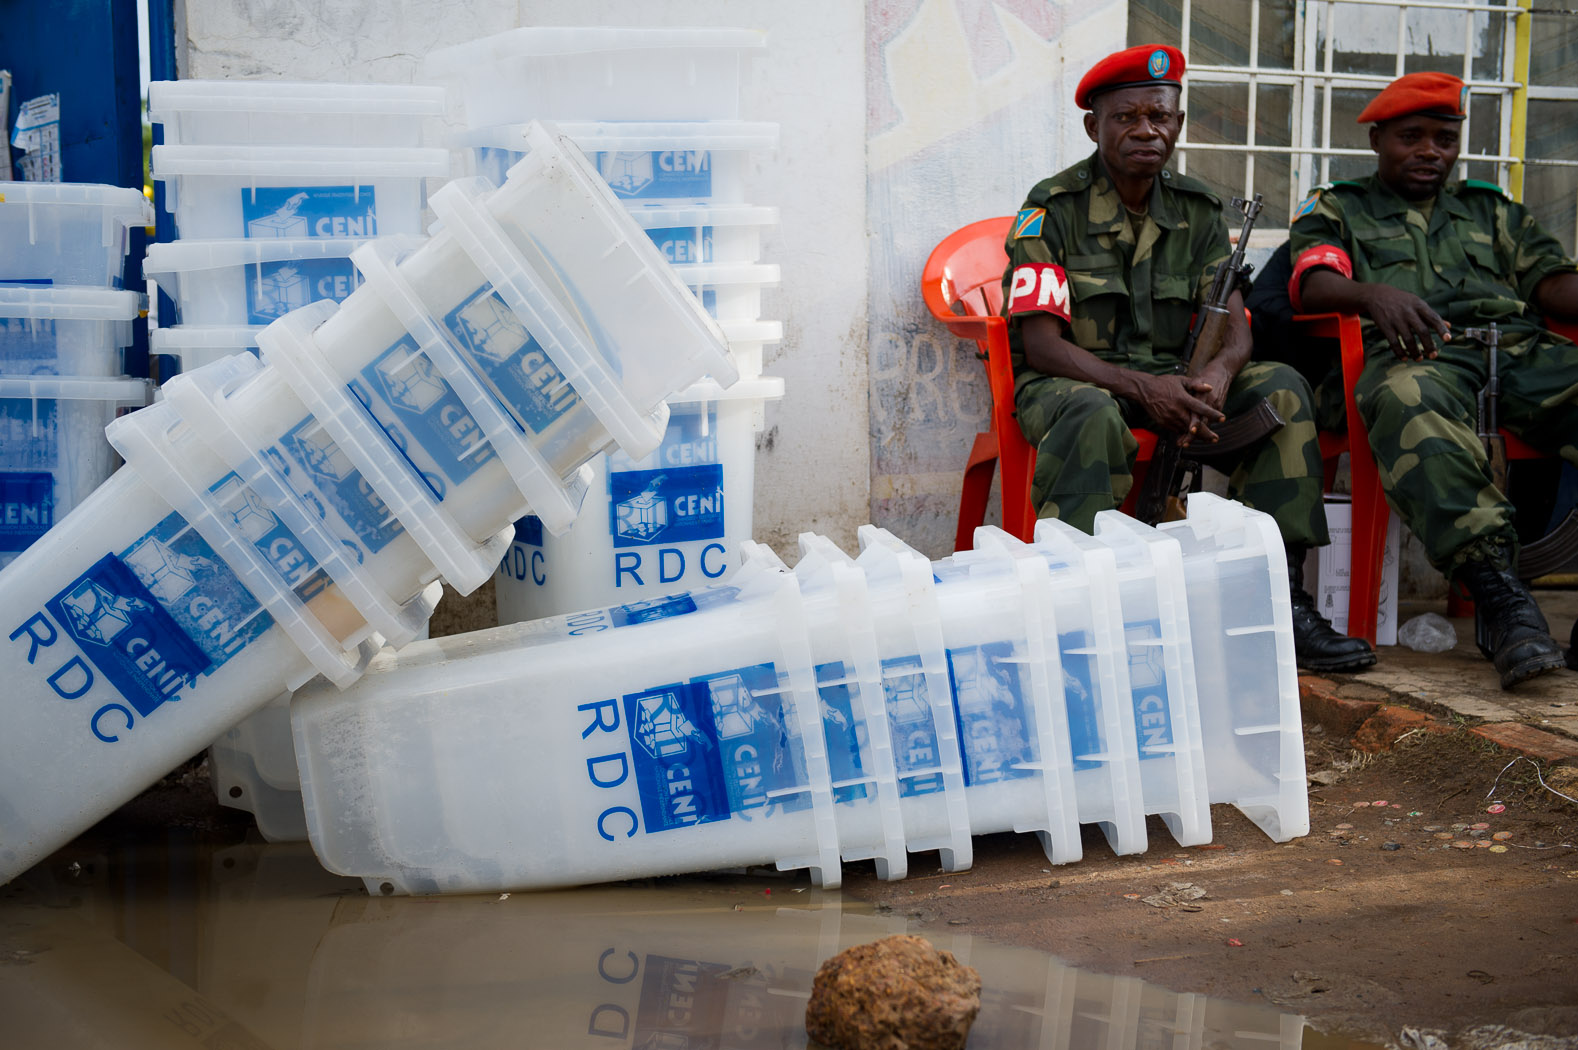 Armed Republican Guard soldiers sit outside the Independent National Electoral Commission (CENI) offices in Lubumbashi as bags of cast ballots arrive. The army and police were on high alert after attacks in the city, and expected further aggression against the CENI.